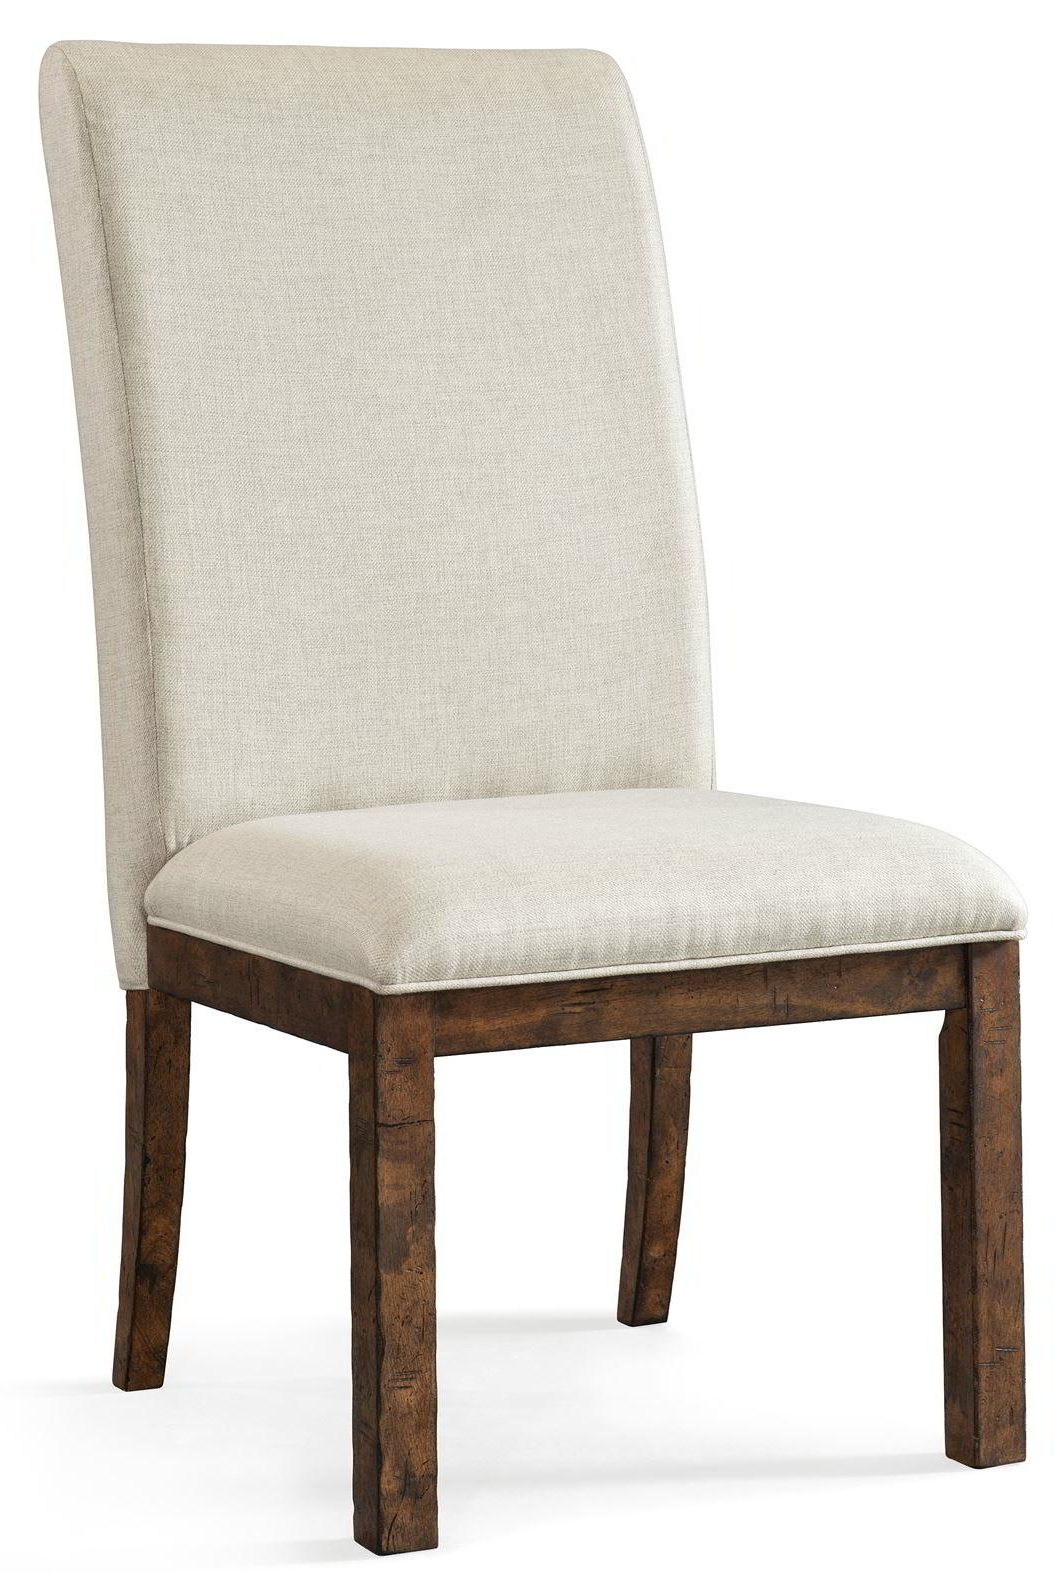 Gwen Upholstered Side Chair, Simple Elegance – Frontroom Furnishings Throughout Gwen Sofa Chairs (Photo 10 of 25)